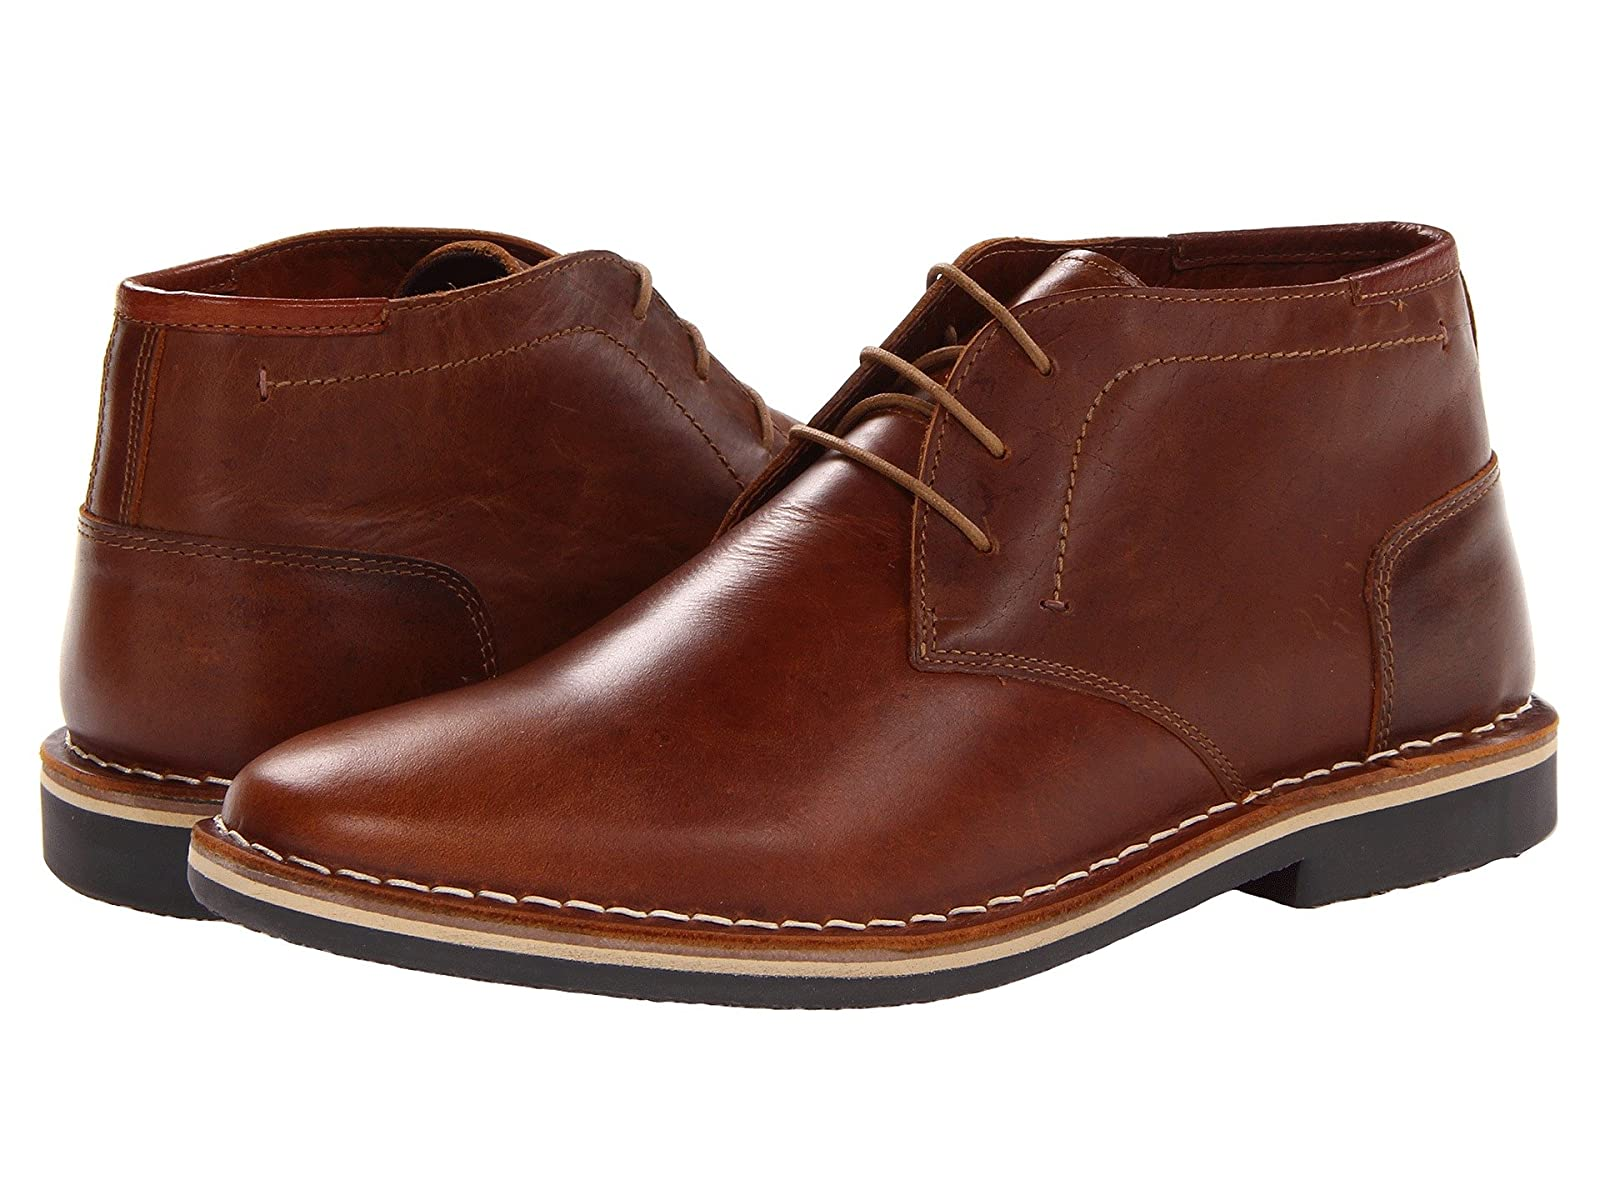 Steve Madden HarkenEconomical and quality shoes